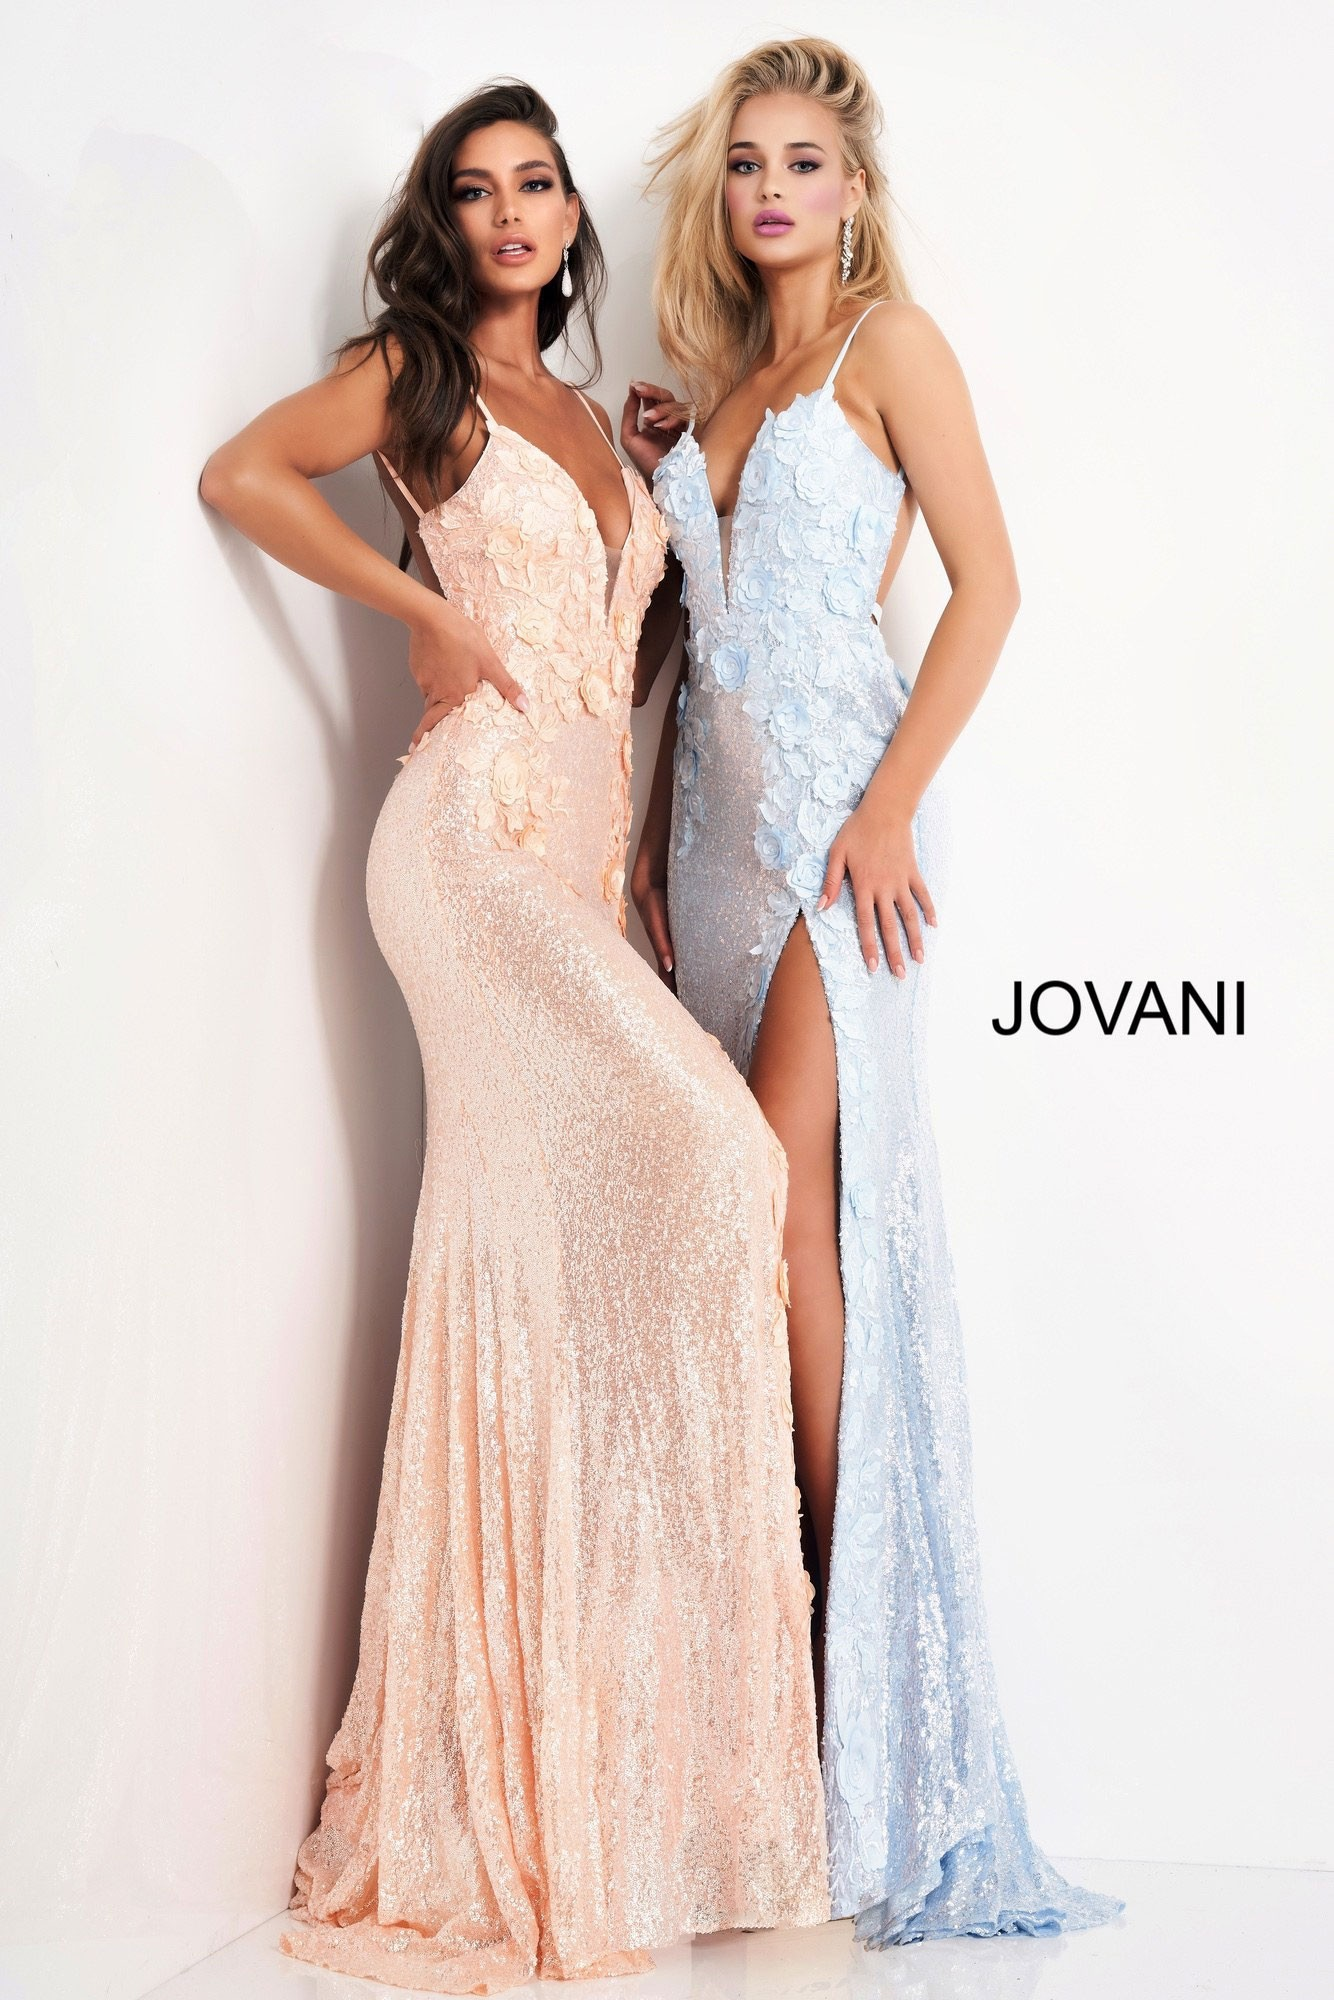 Jovani 1012 Floral Appliques Backless Prom Dress